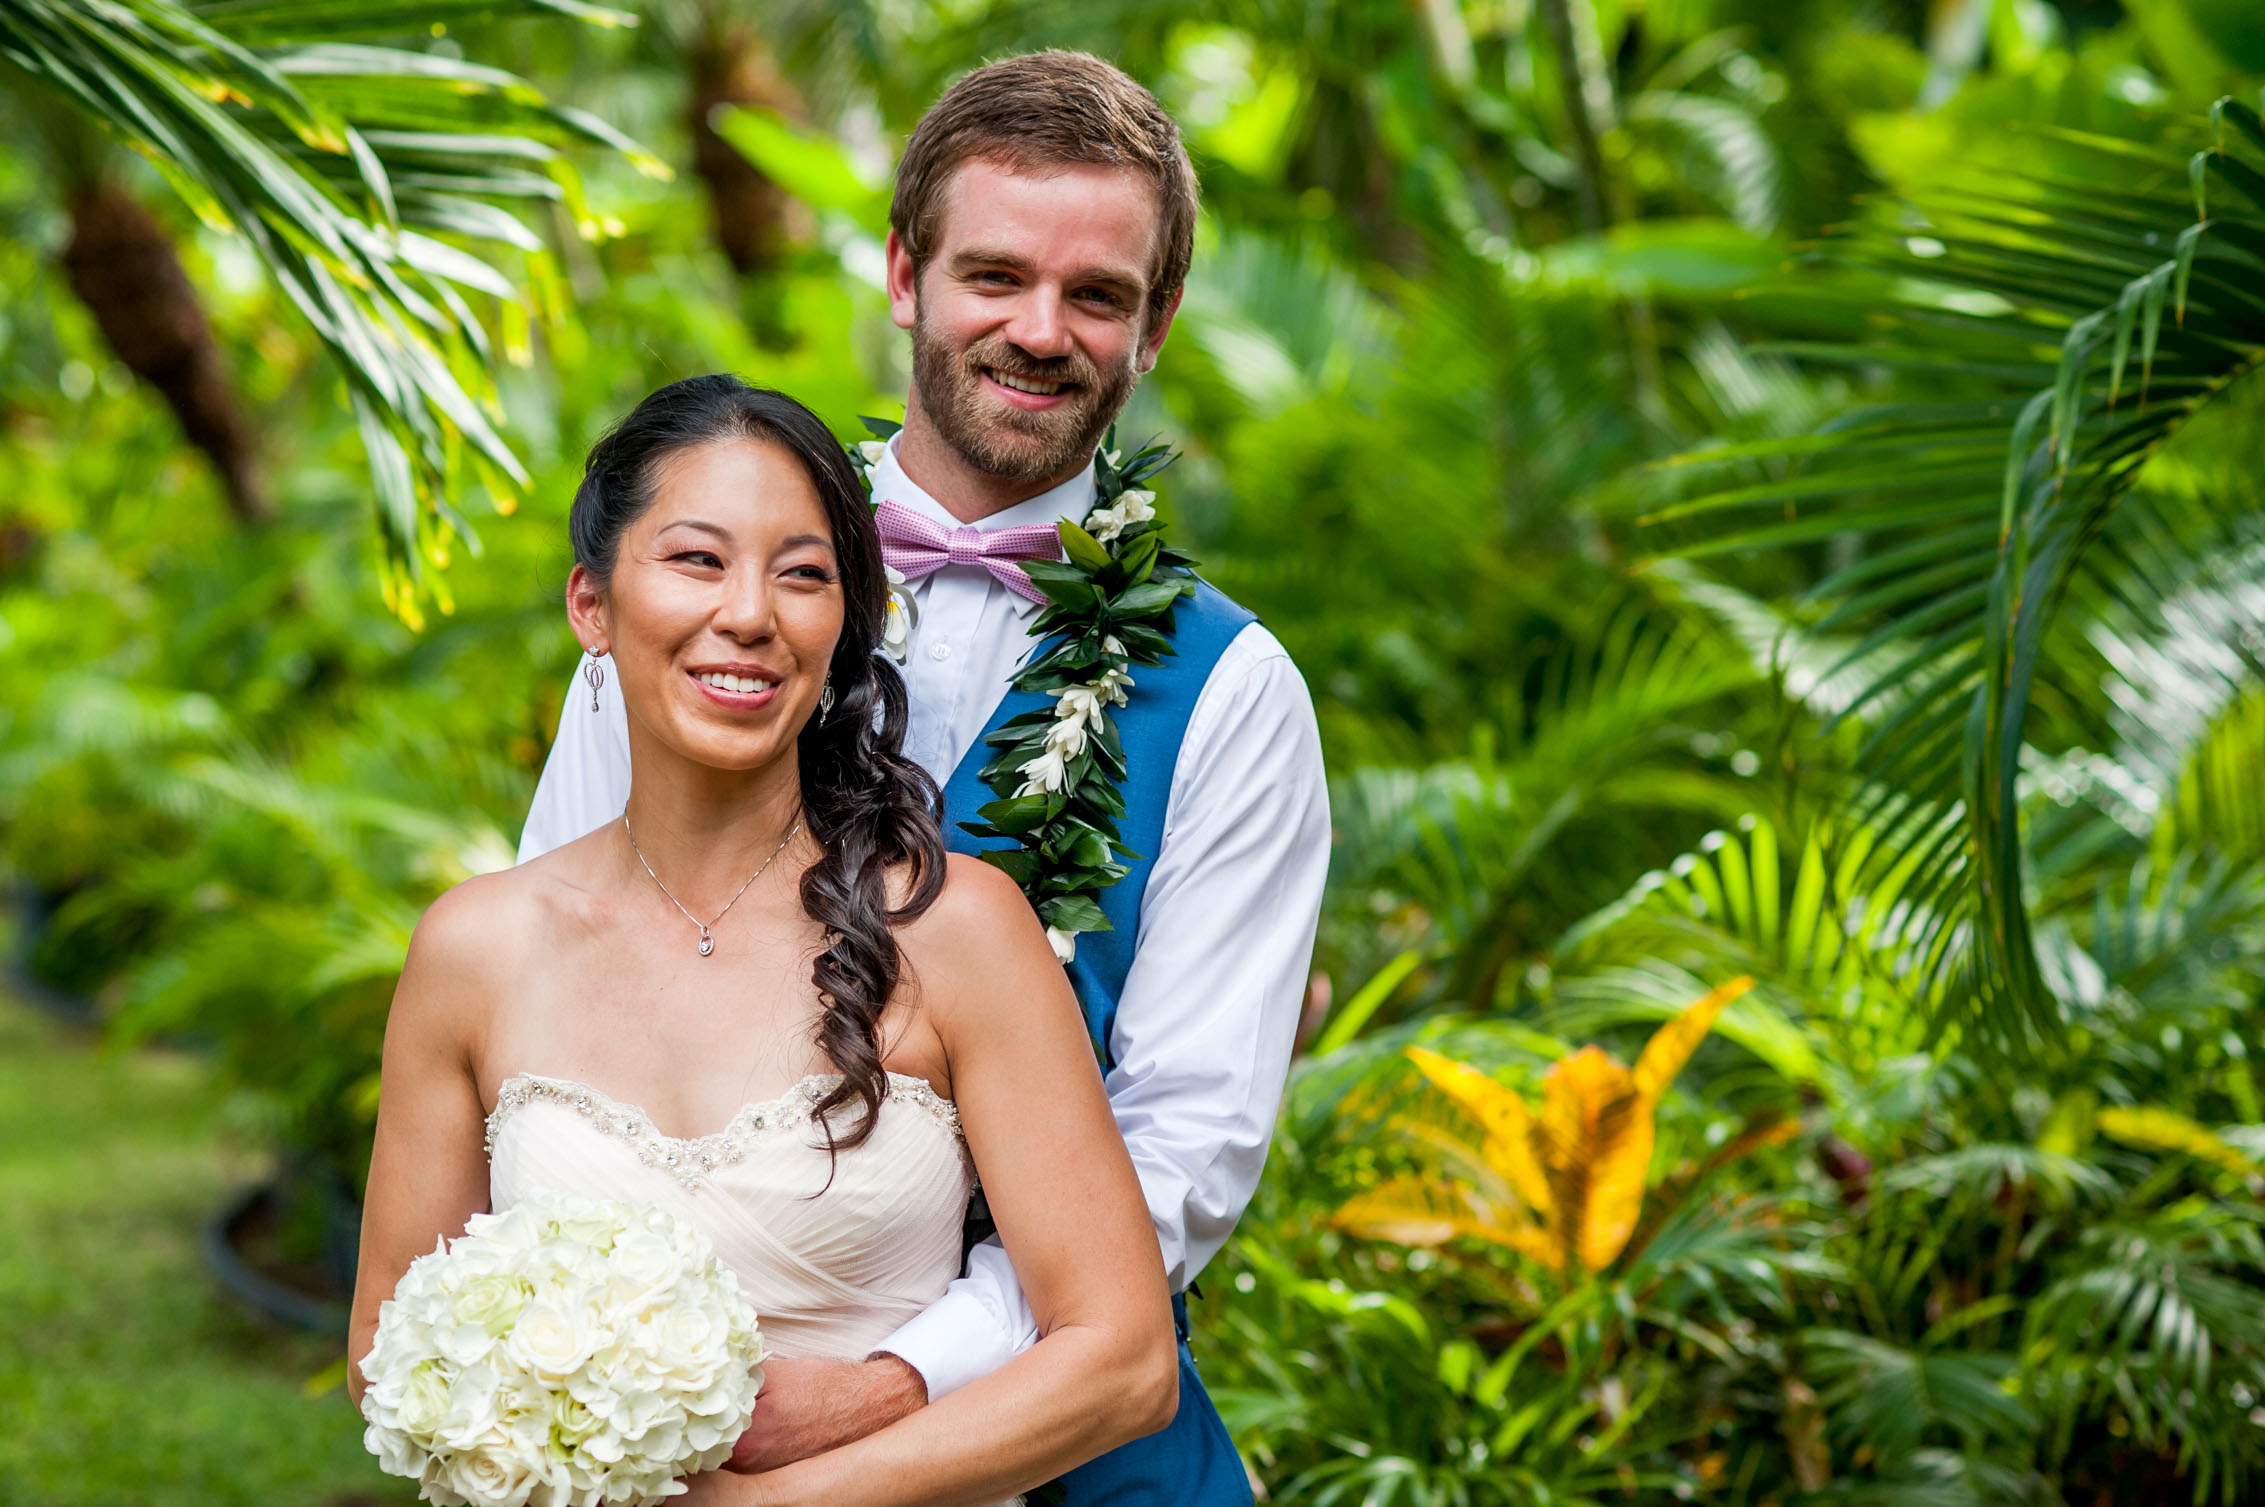 wedding couple embracing in hawaii lush greenery